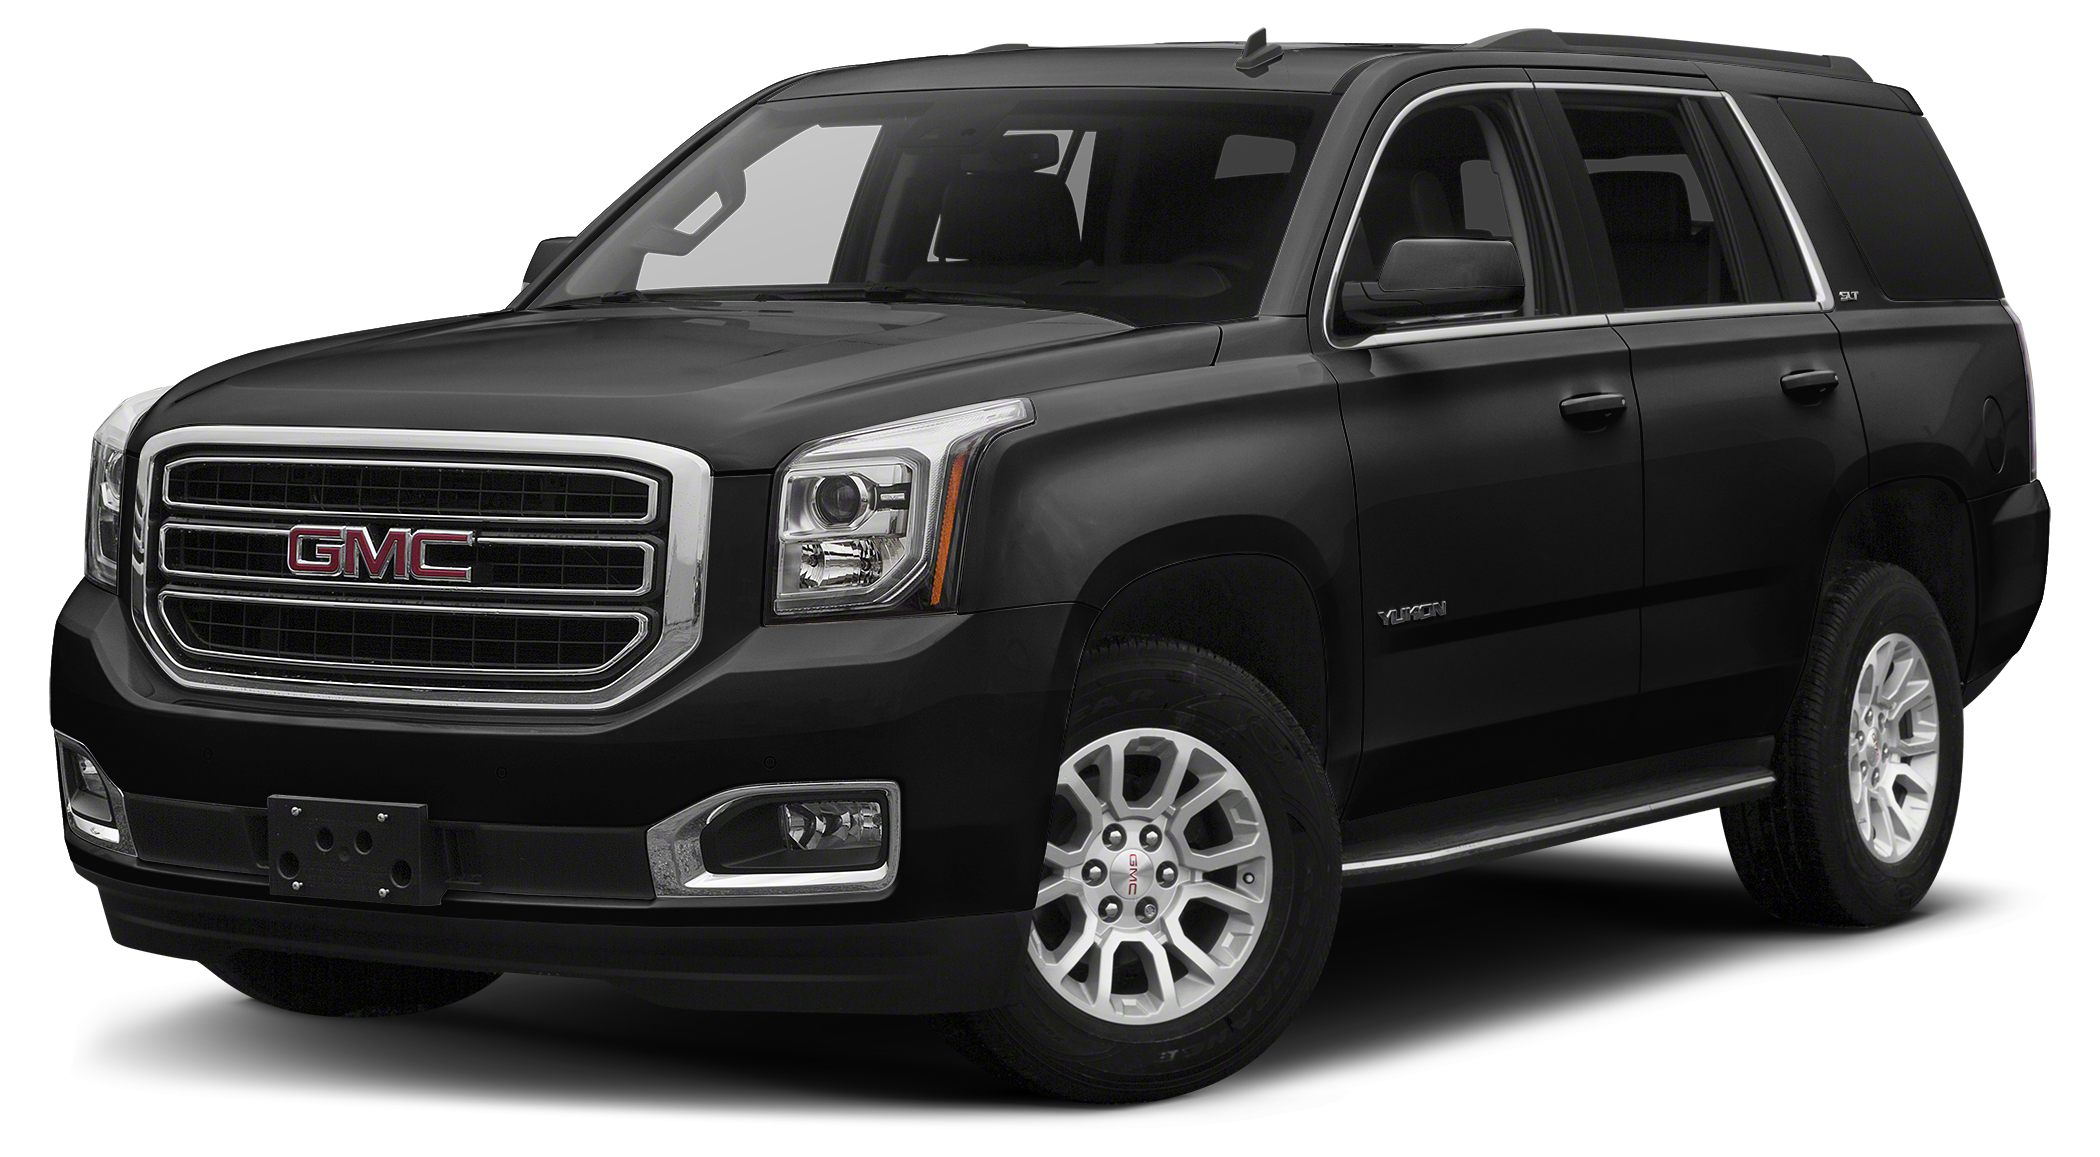 2016 GMC Yukon SLT This 2016 GMC Yukon SLT is complete with top-features such as the backup sensor